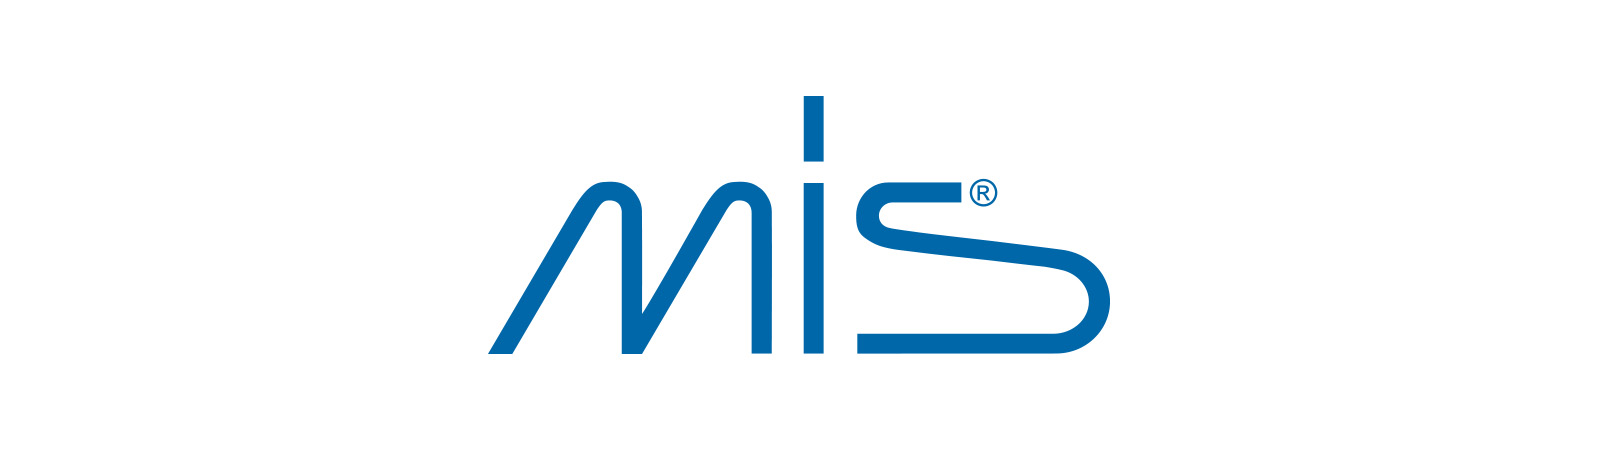 MIS Implants Technologies Ltd. Logo Image